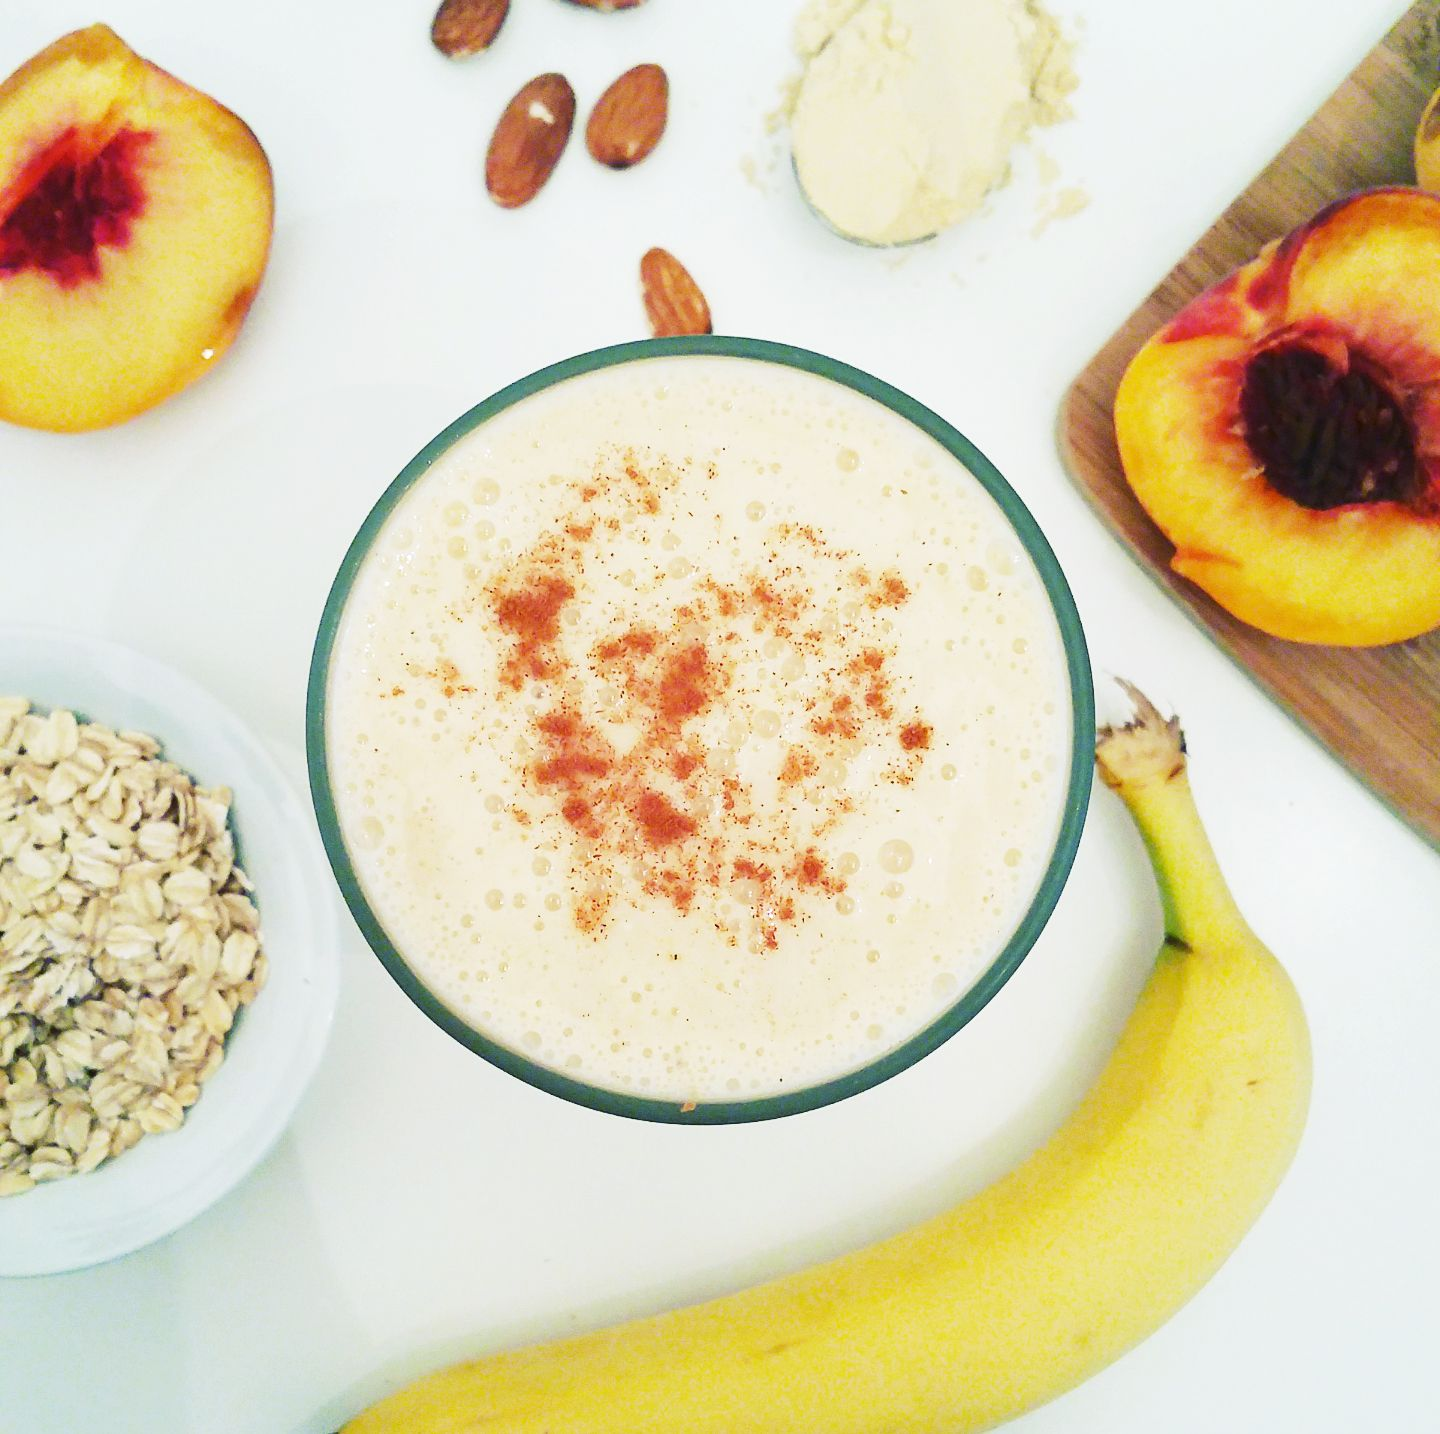 Peach Oatmeal Protein Smoothie - blends the flavors of summer and fall to perfection! #smoothie #recipe